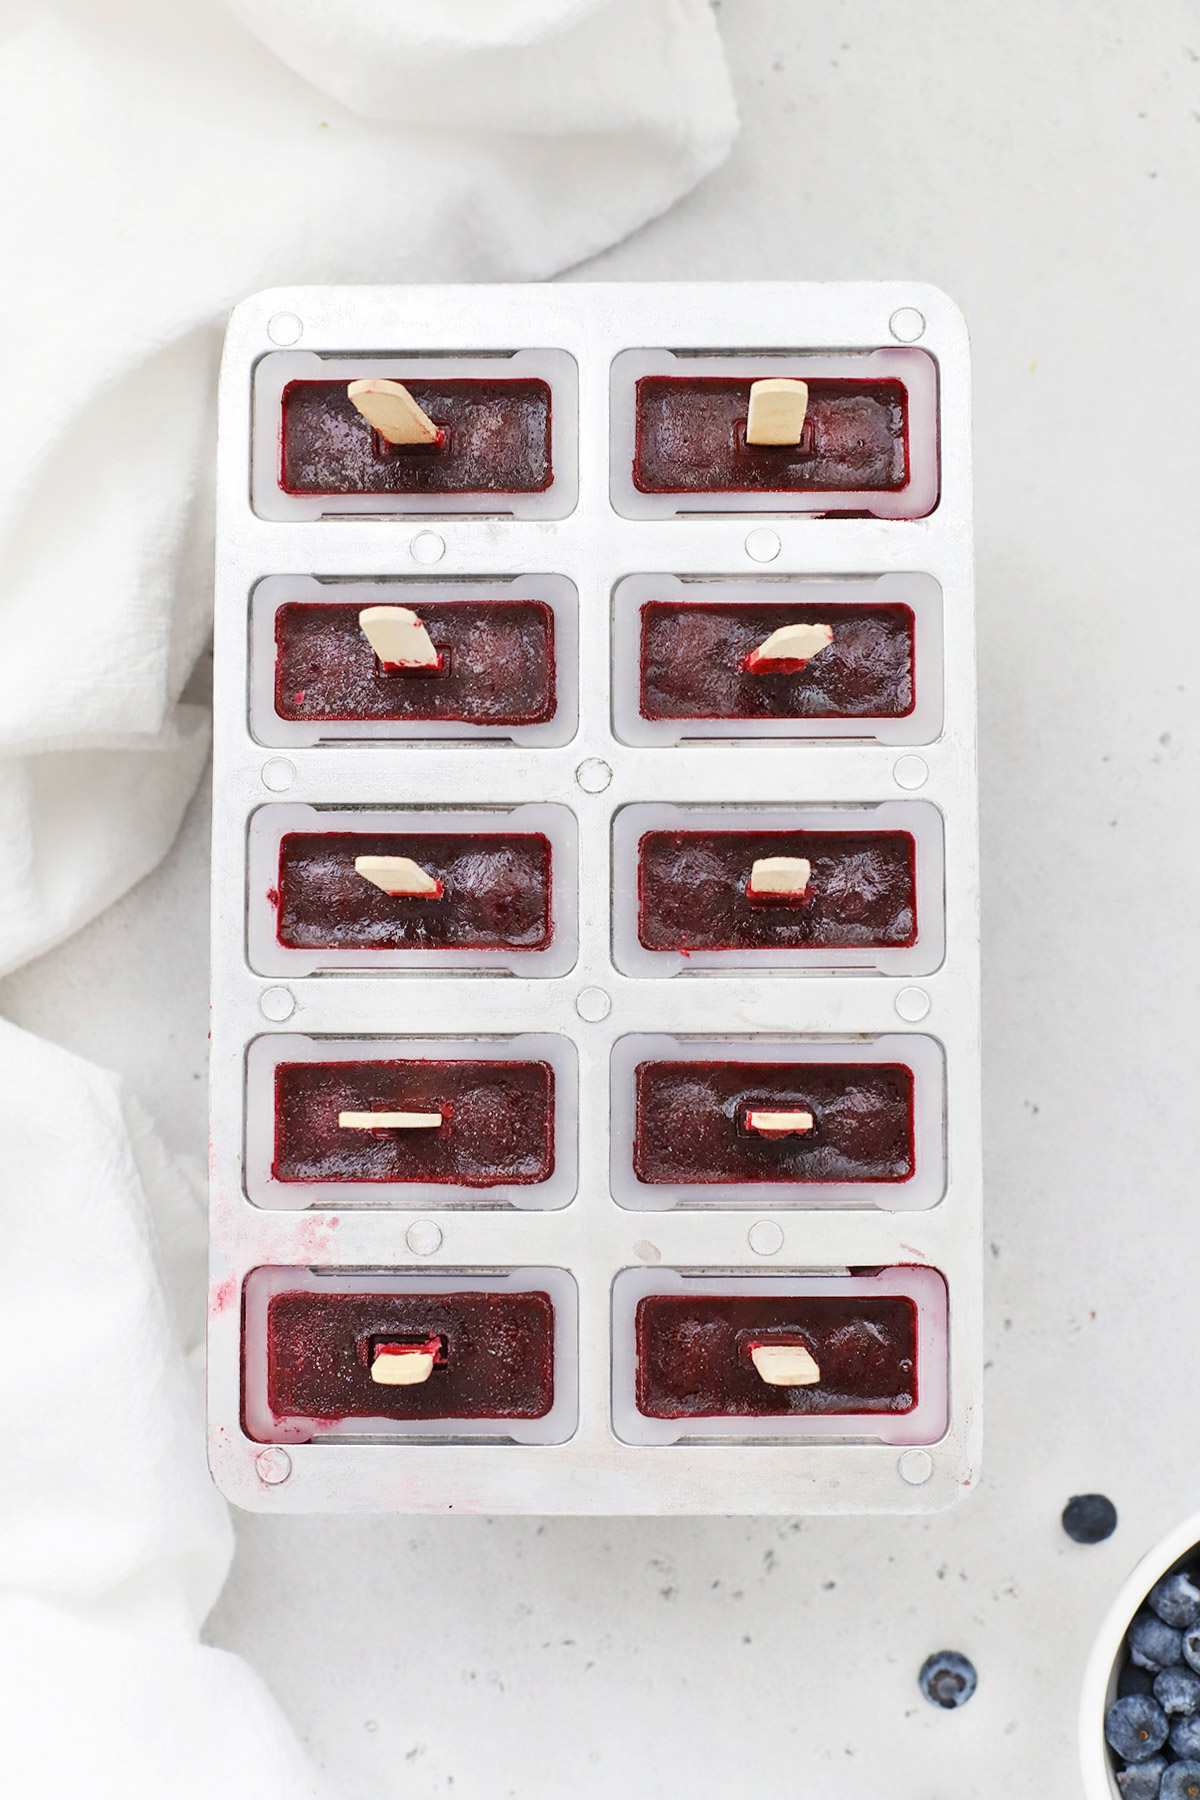 Overhead view of blueberry pomegranate popsicles in the popsicle mold